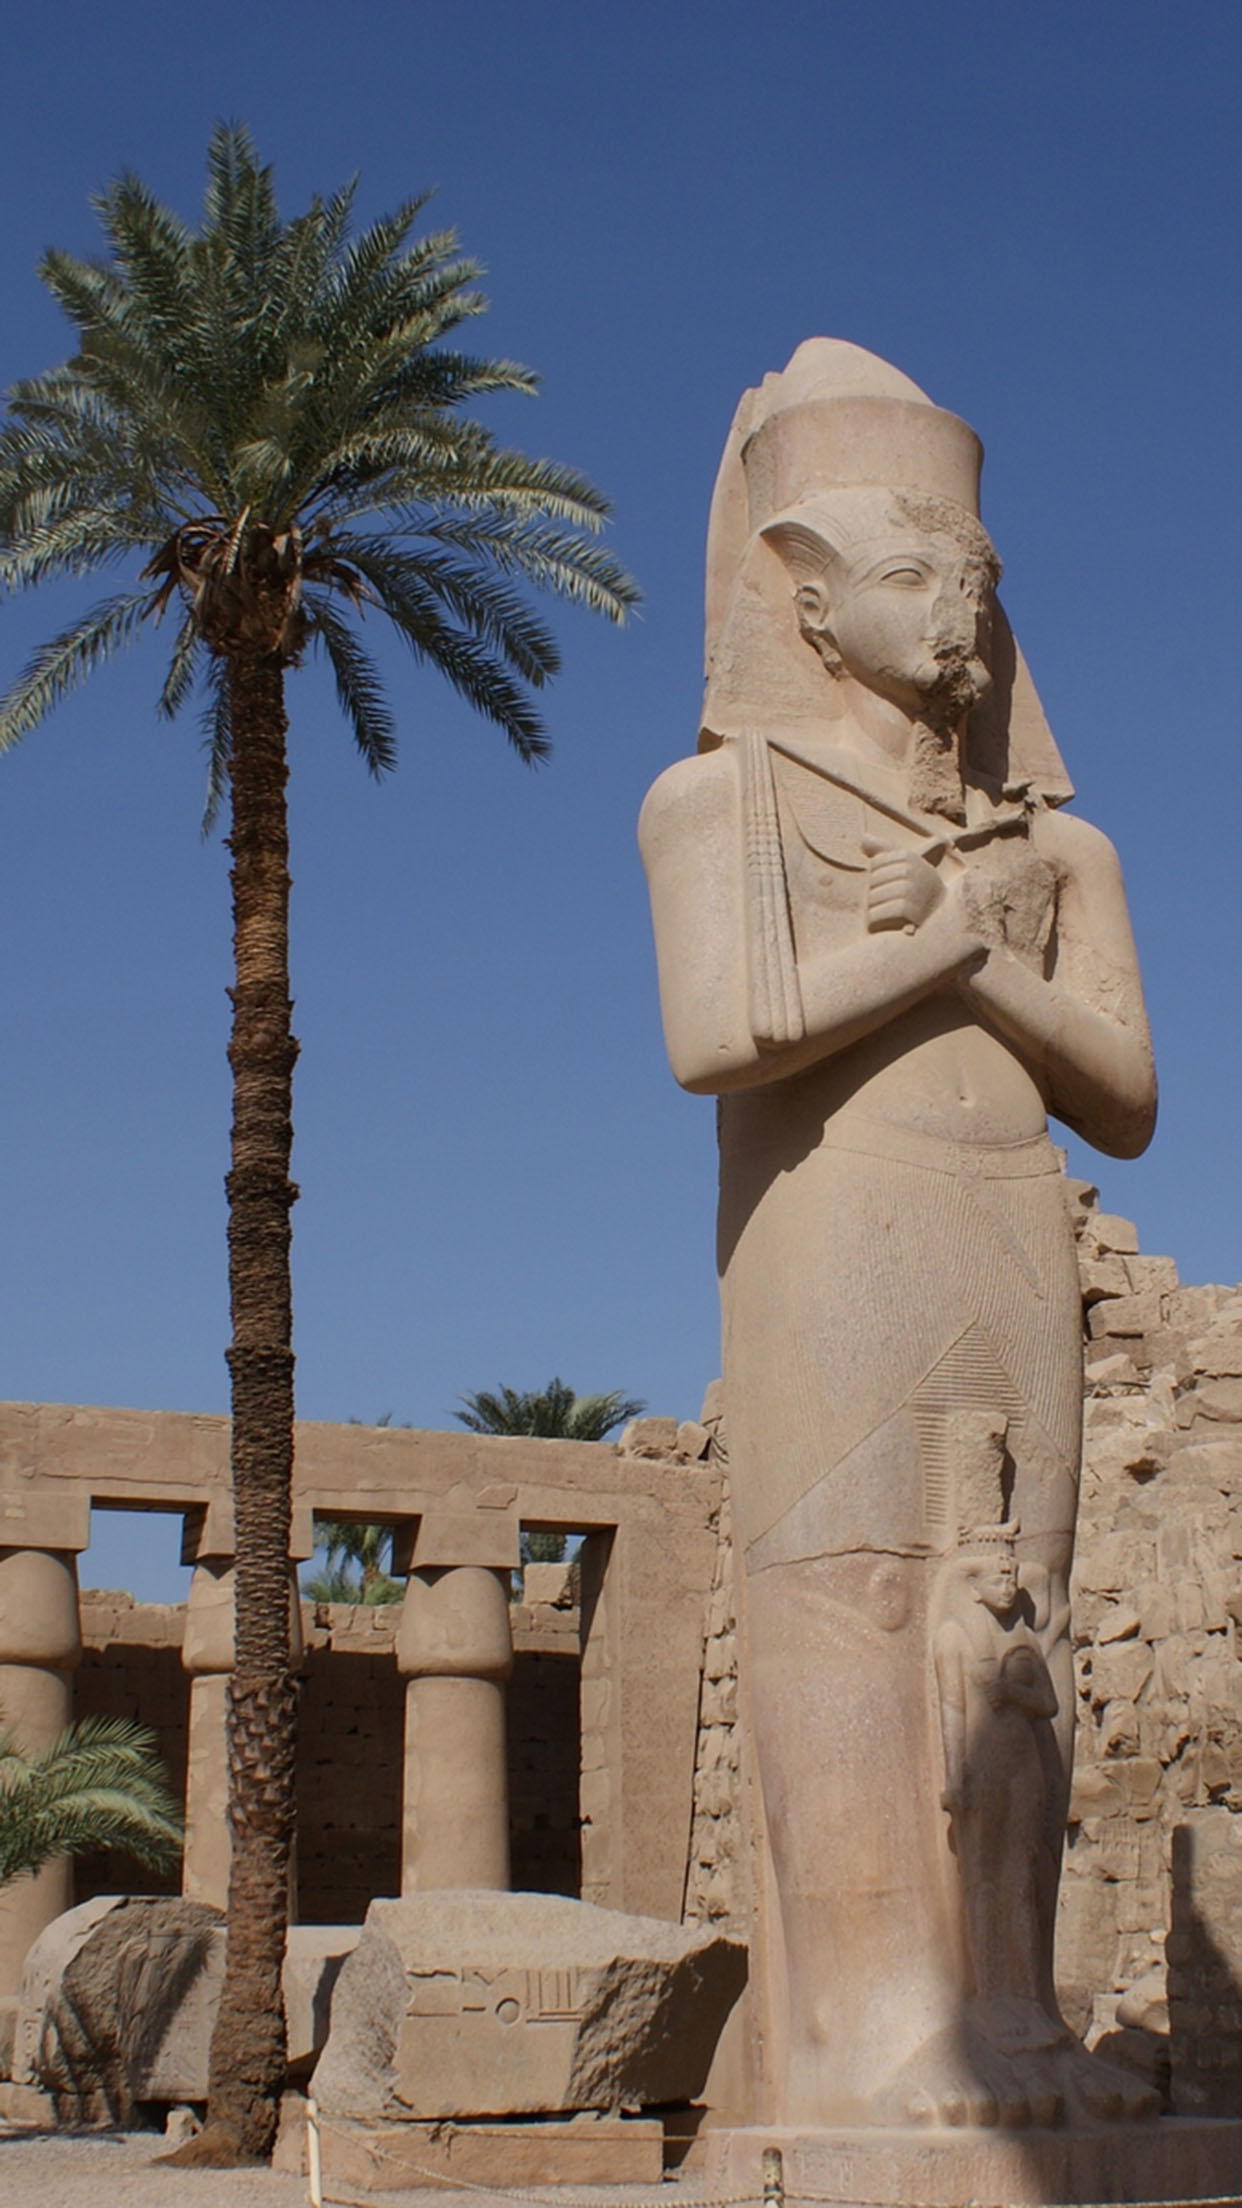 Egypte Louxor Monument 3Wallpapers iPhone Parallax Egypte Louxor Monument